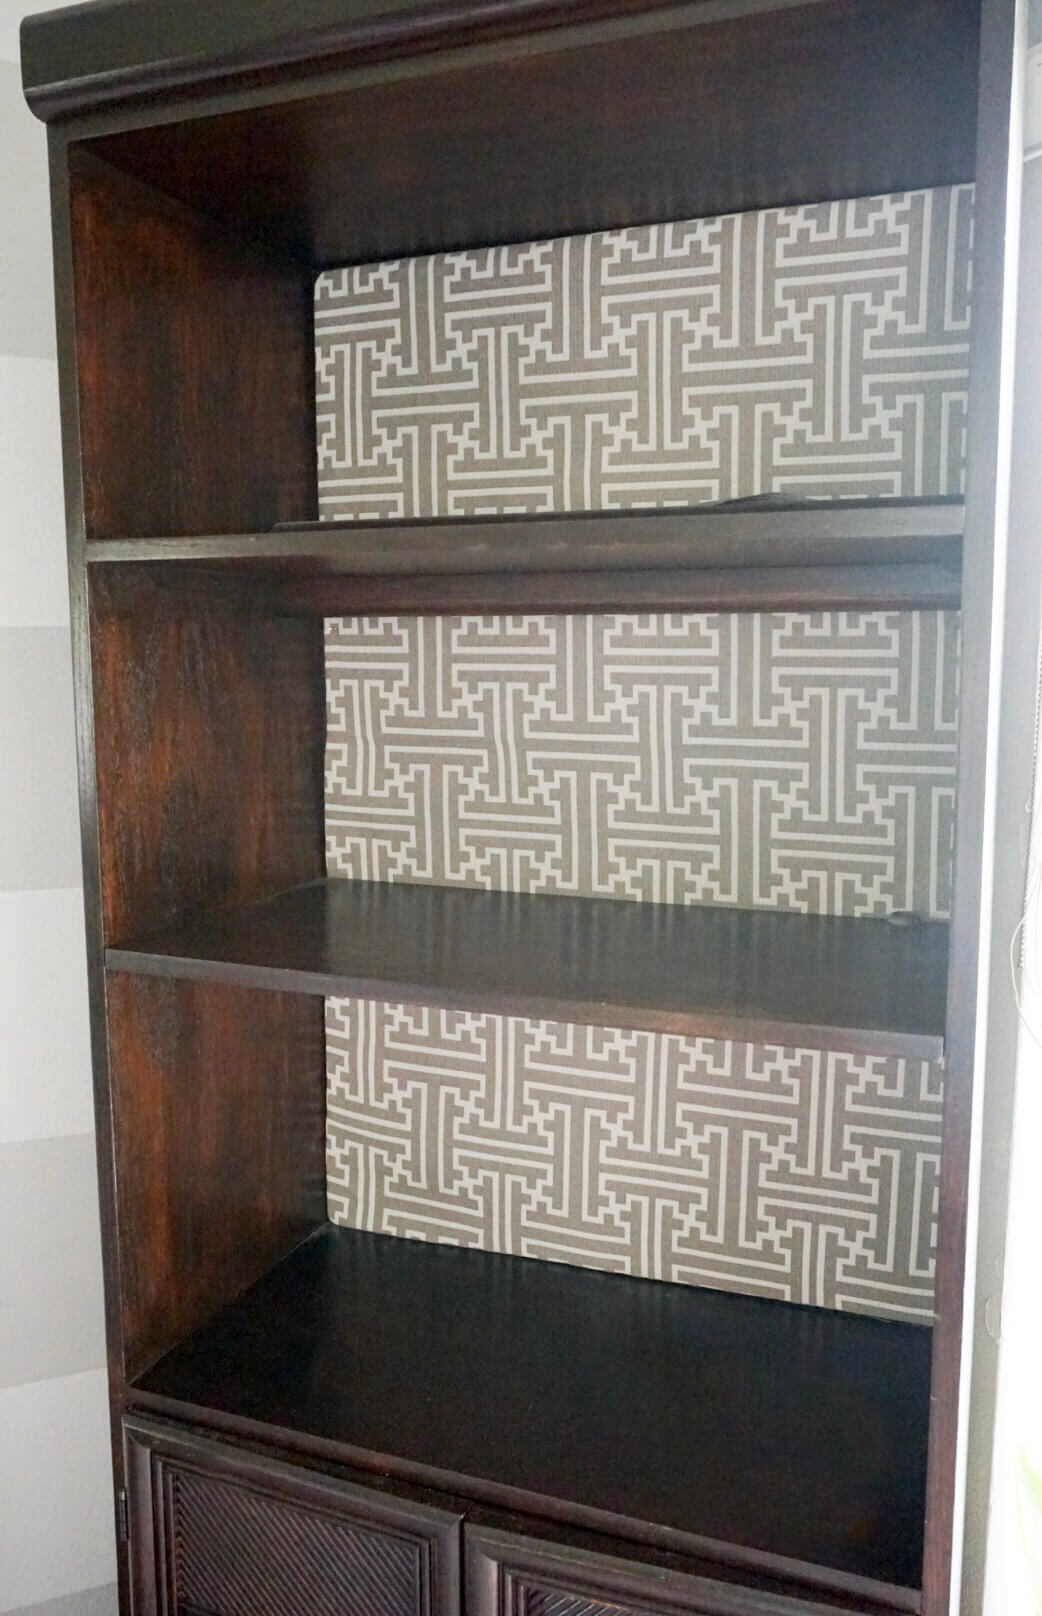 After staining with General Finishes Gel Stain in Java, I covered the back of the bookcase with this geo damask fabric.